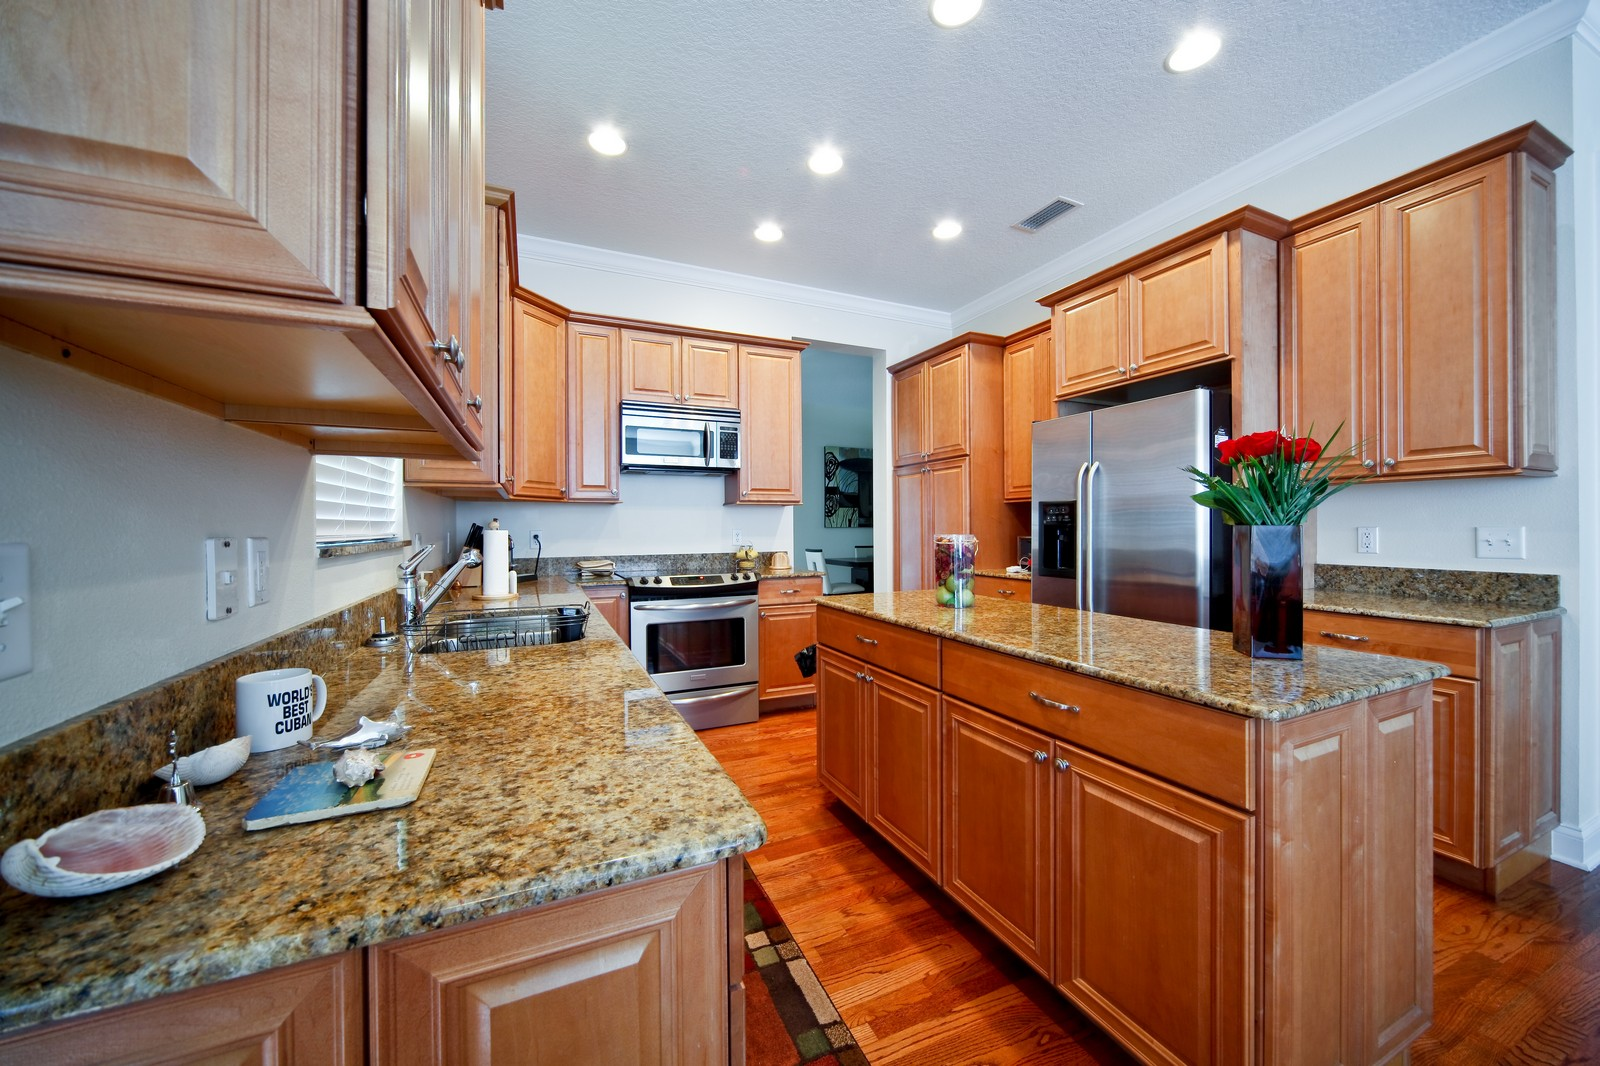 Real Estate Photography - 3812 El Prado Blvd, Tampa, FL, 33629 - Kitchen